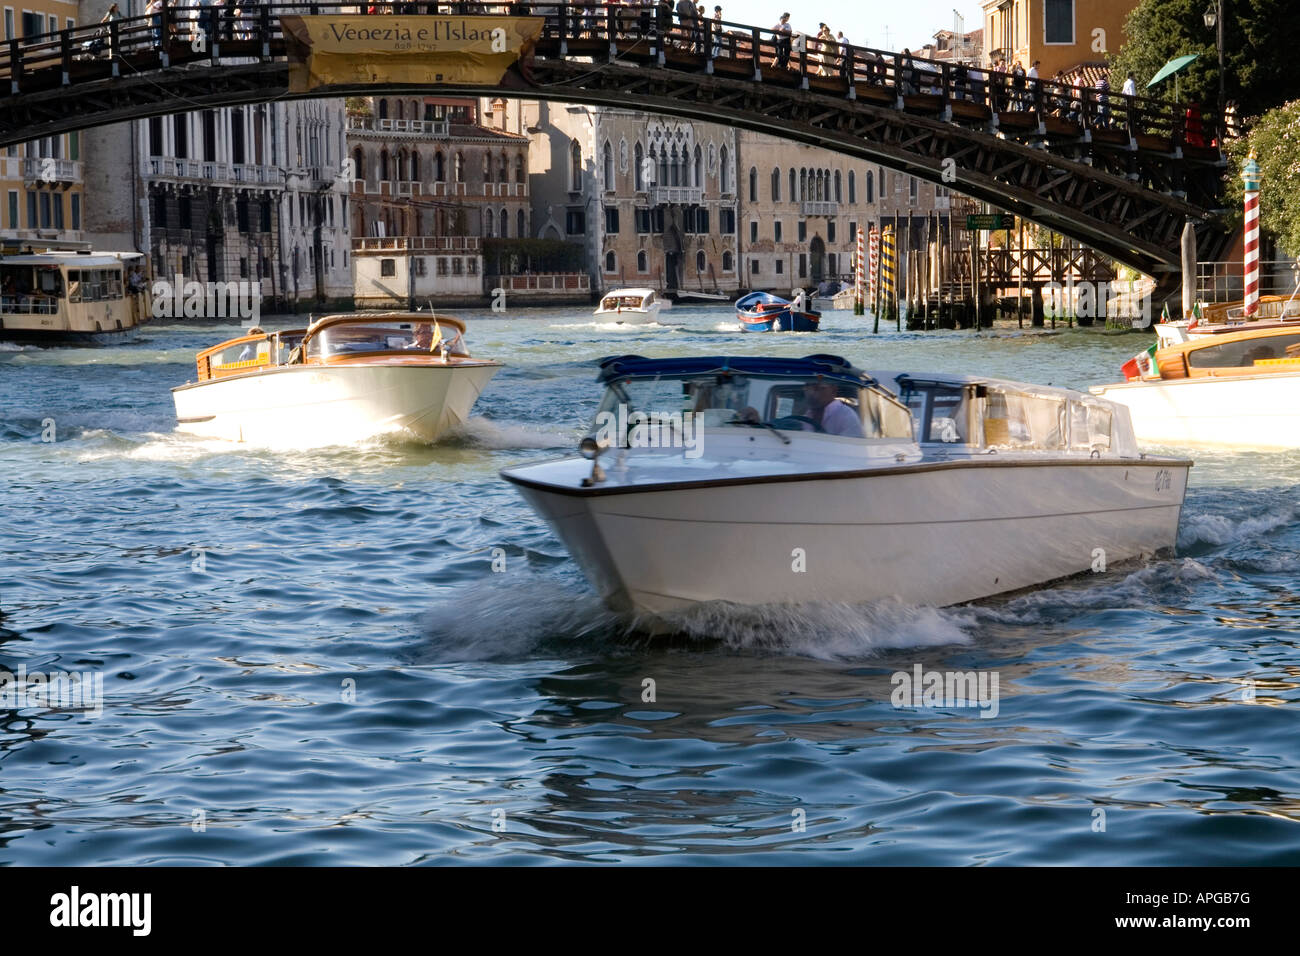 Academia Bridge and Water Taxis, Grand Canal, Venice (03) Italy - Stock Image